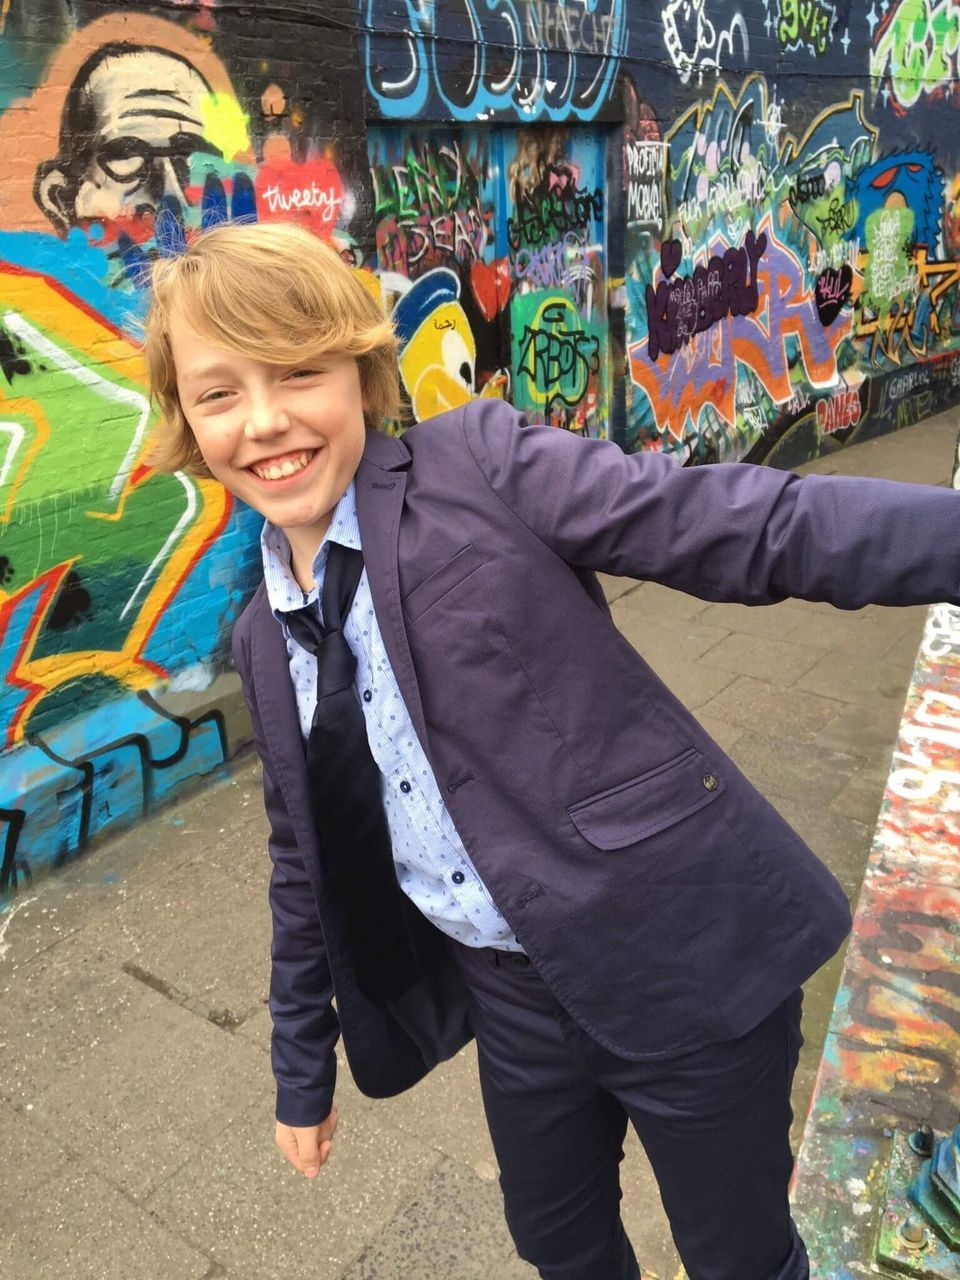 smiling, graffiti, happiness, real people, fun, looking at camera, portrait, multi colored, full length, leisure activity, childhood, day, one person, outdoors, cheerful, boys, lifestyles, standing, young adult, people